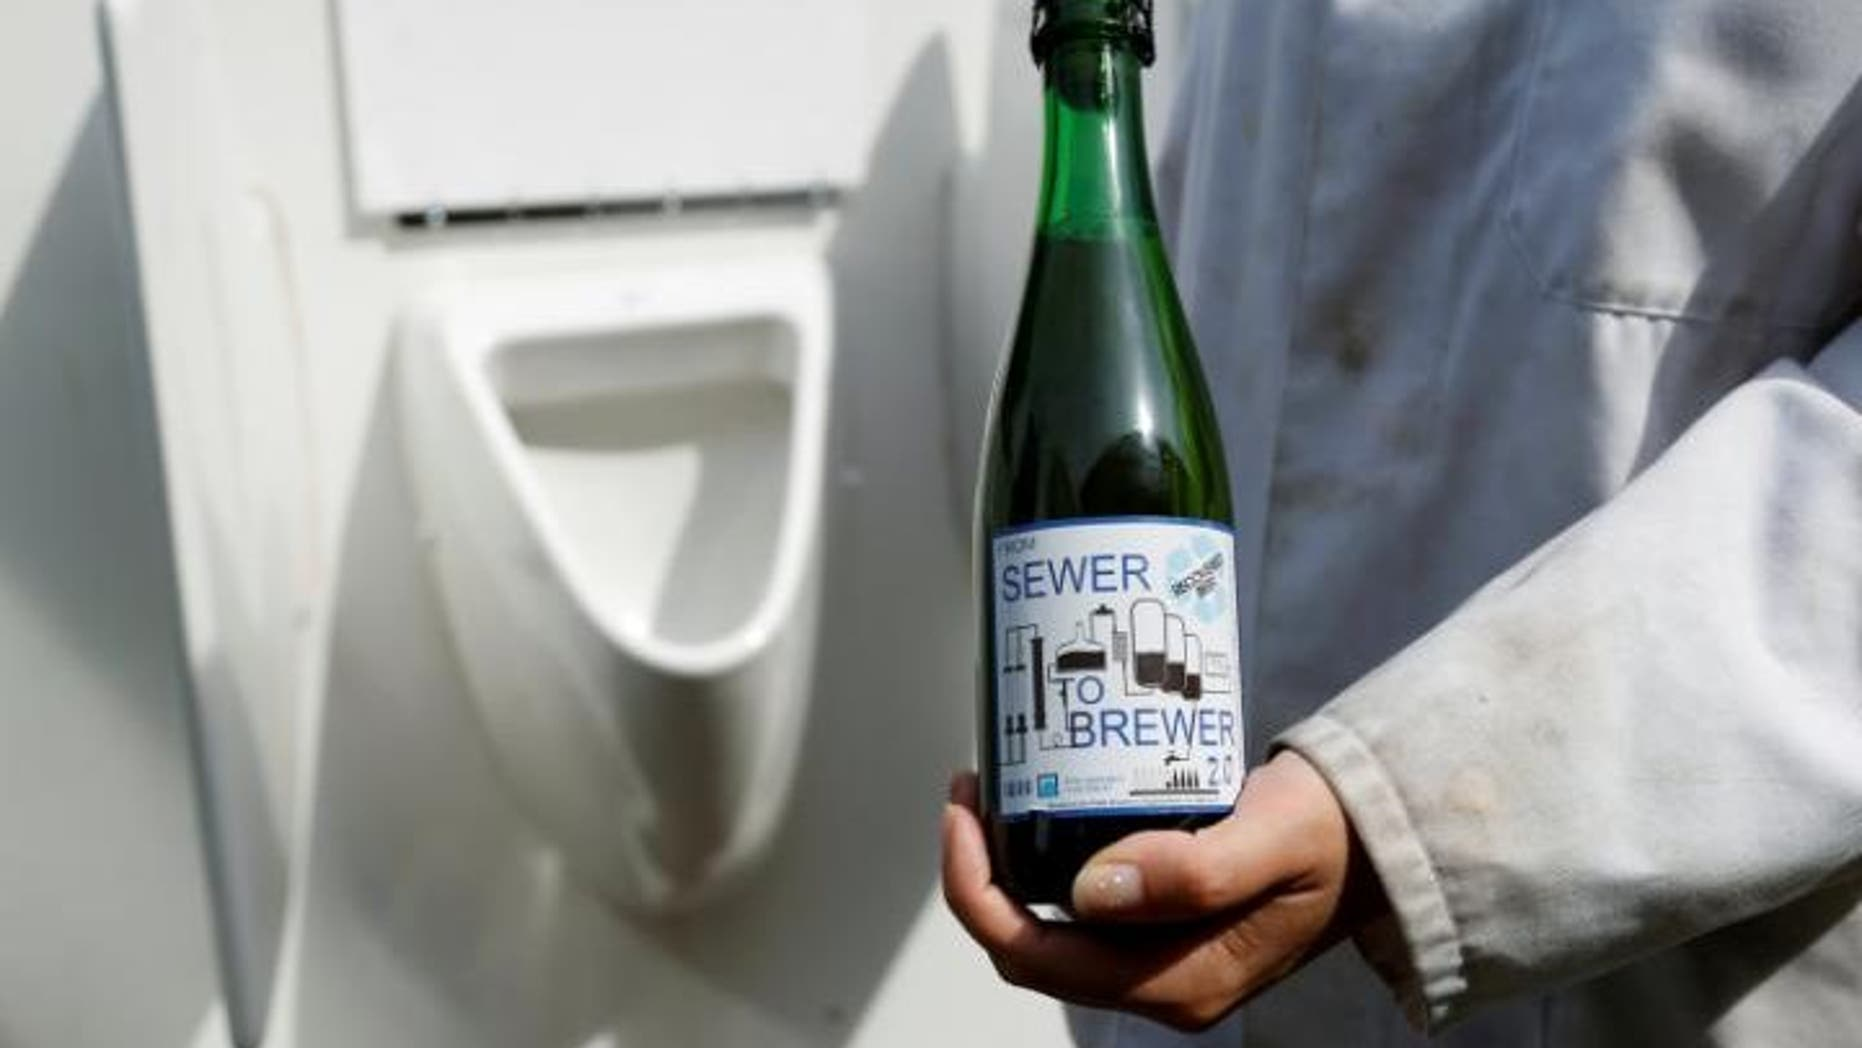 From sewer to brewer. This bottle brew was crafted with recycled urine.